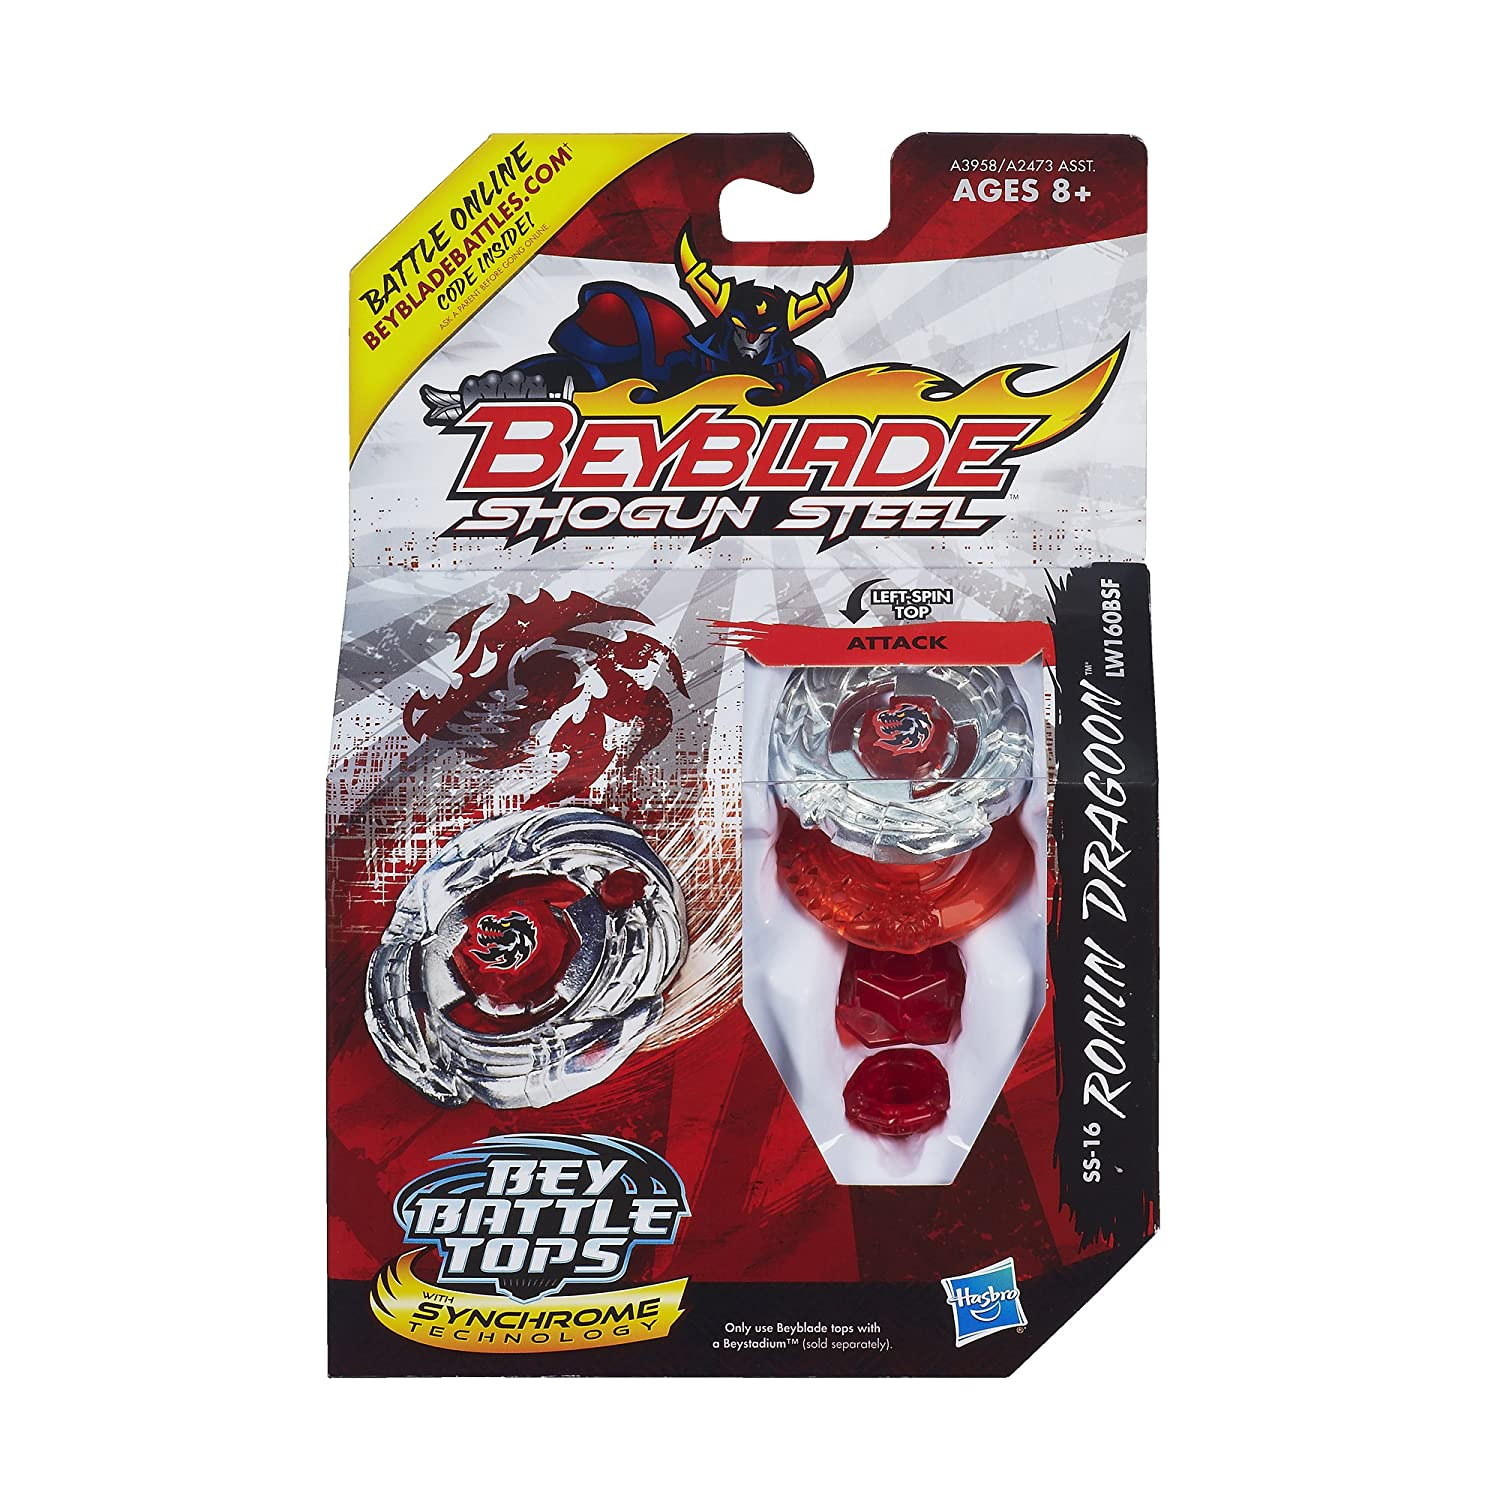 Beyblade shogun steel dark knight dragooon - Beyblade shogun steel toupie ...